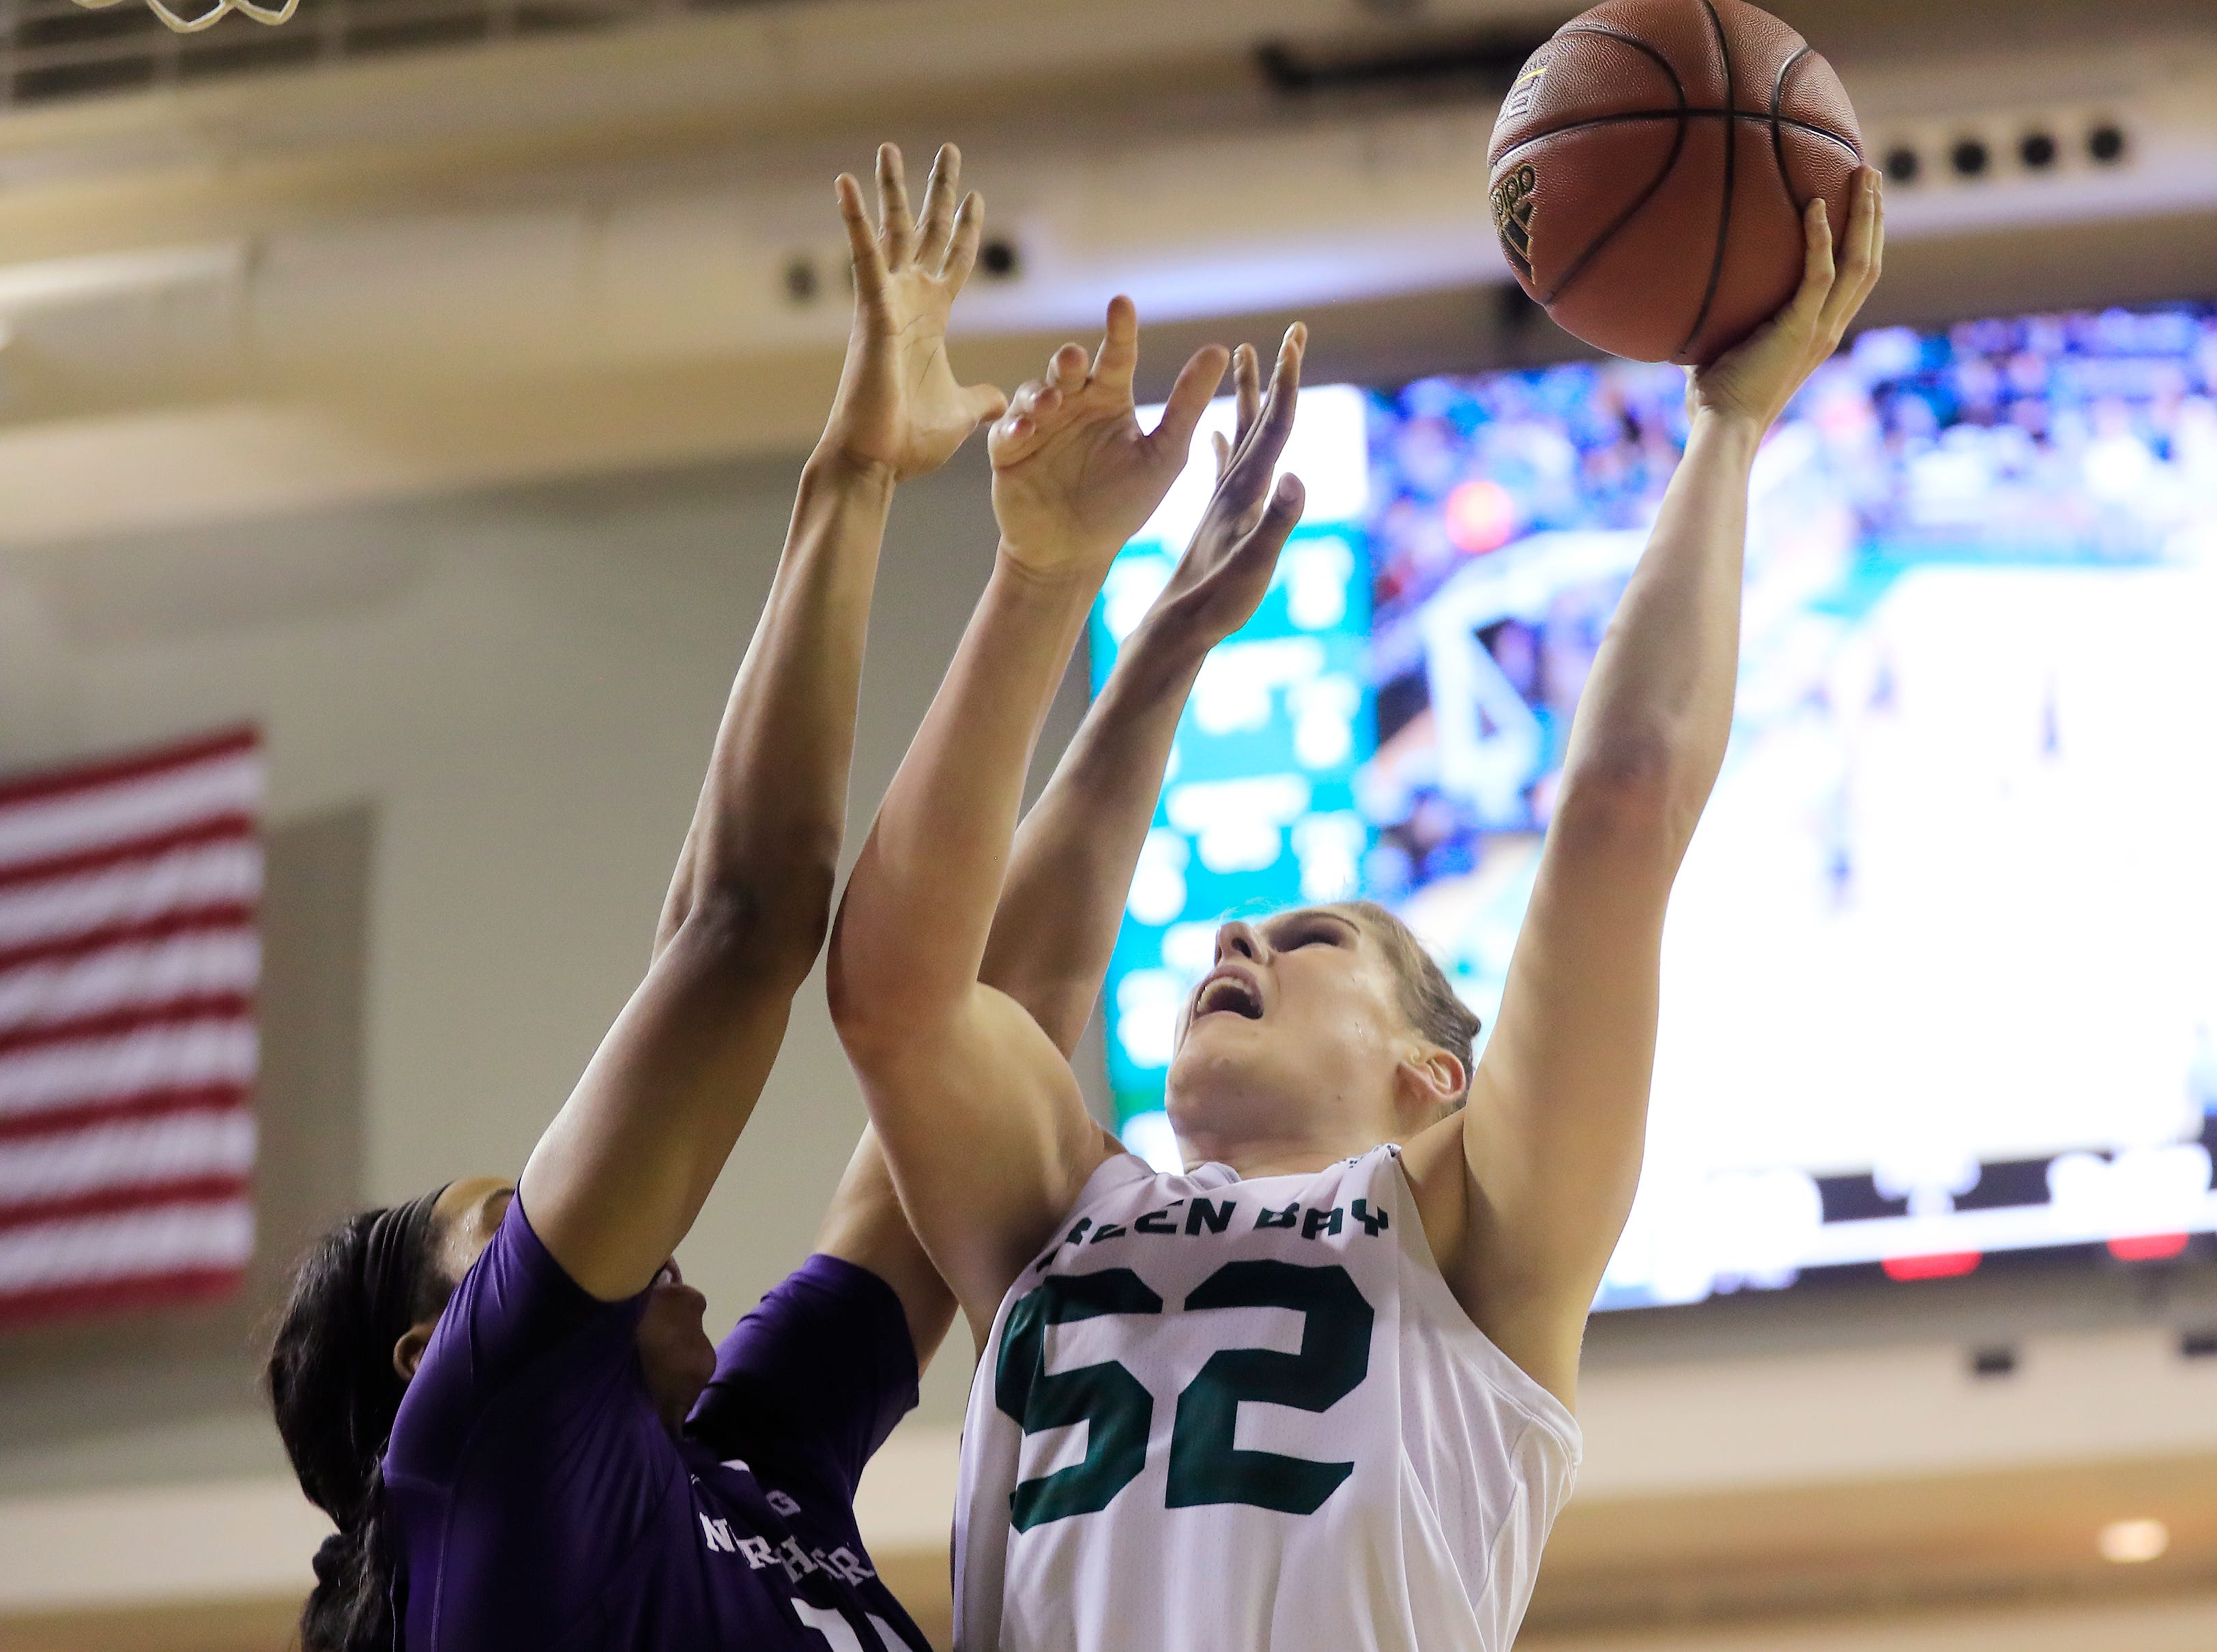 Green Bay Phoenix forward/center Madison Wolf (52) drives to the basket against Northwestern Wildcats forward Pallas Kunaiyi-Akpanah (14) in a women's NCAA basketball game at the Kress Center on Tuesday, November 6, 2018 in Green Bay, Wis.